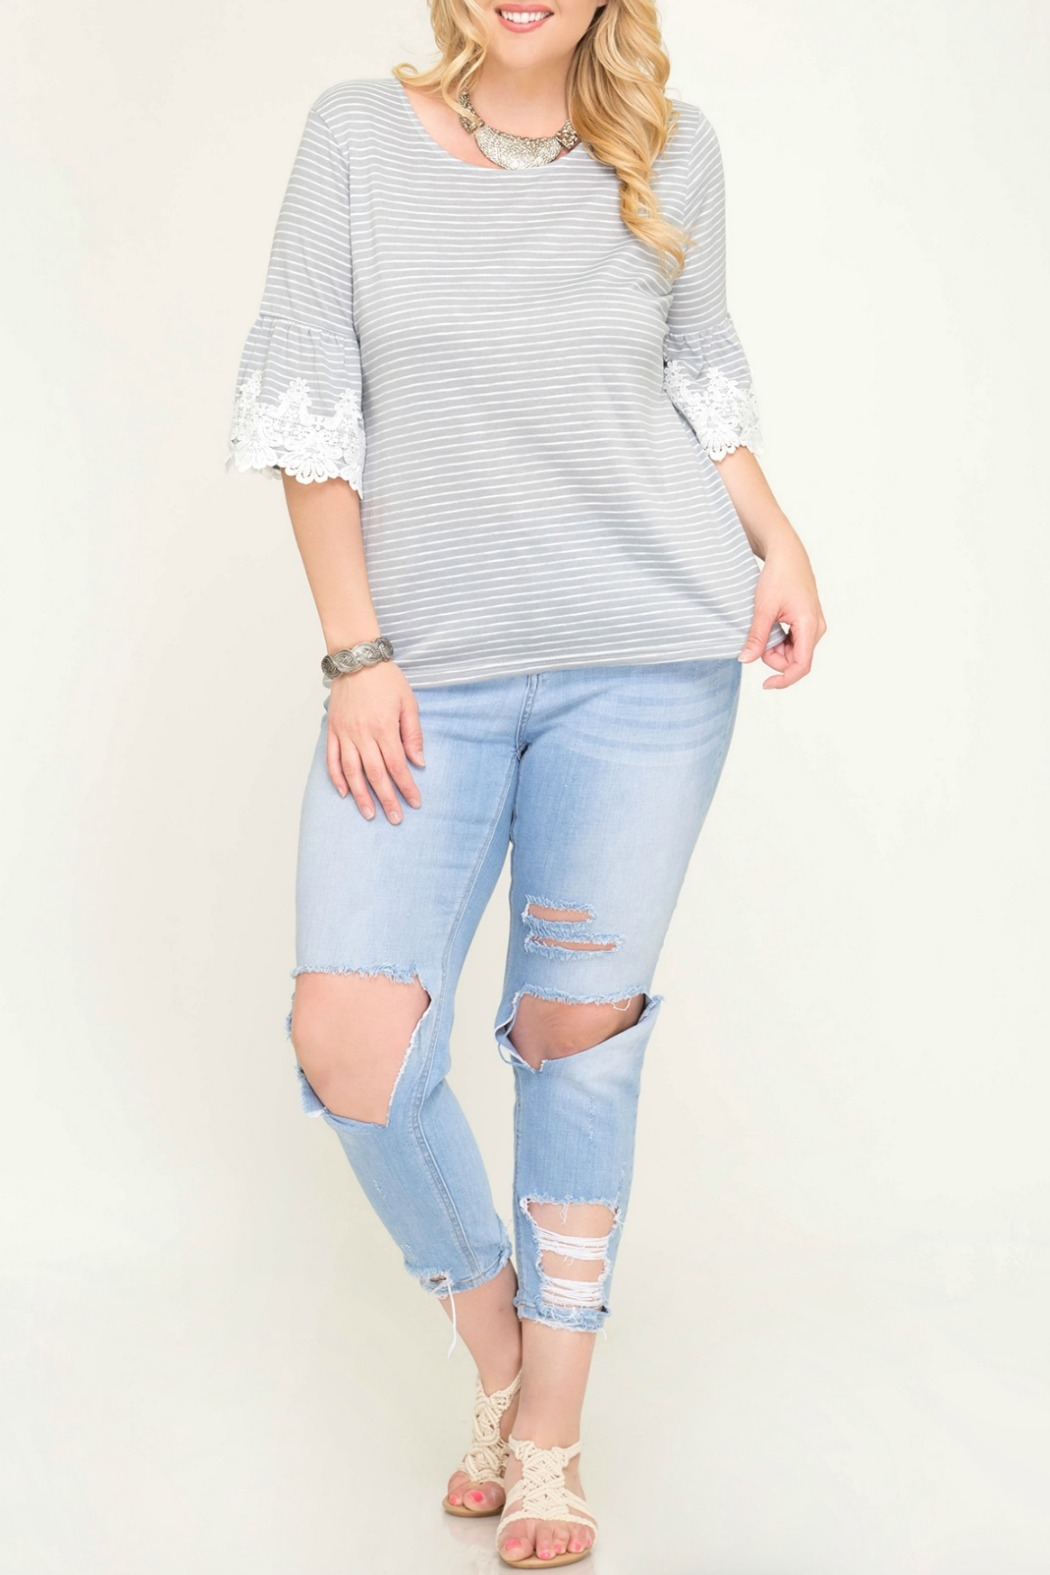 She + Sky Grey Stripe Knit Top with Trim Lace Detail - Main Image